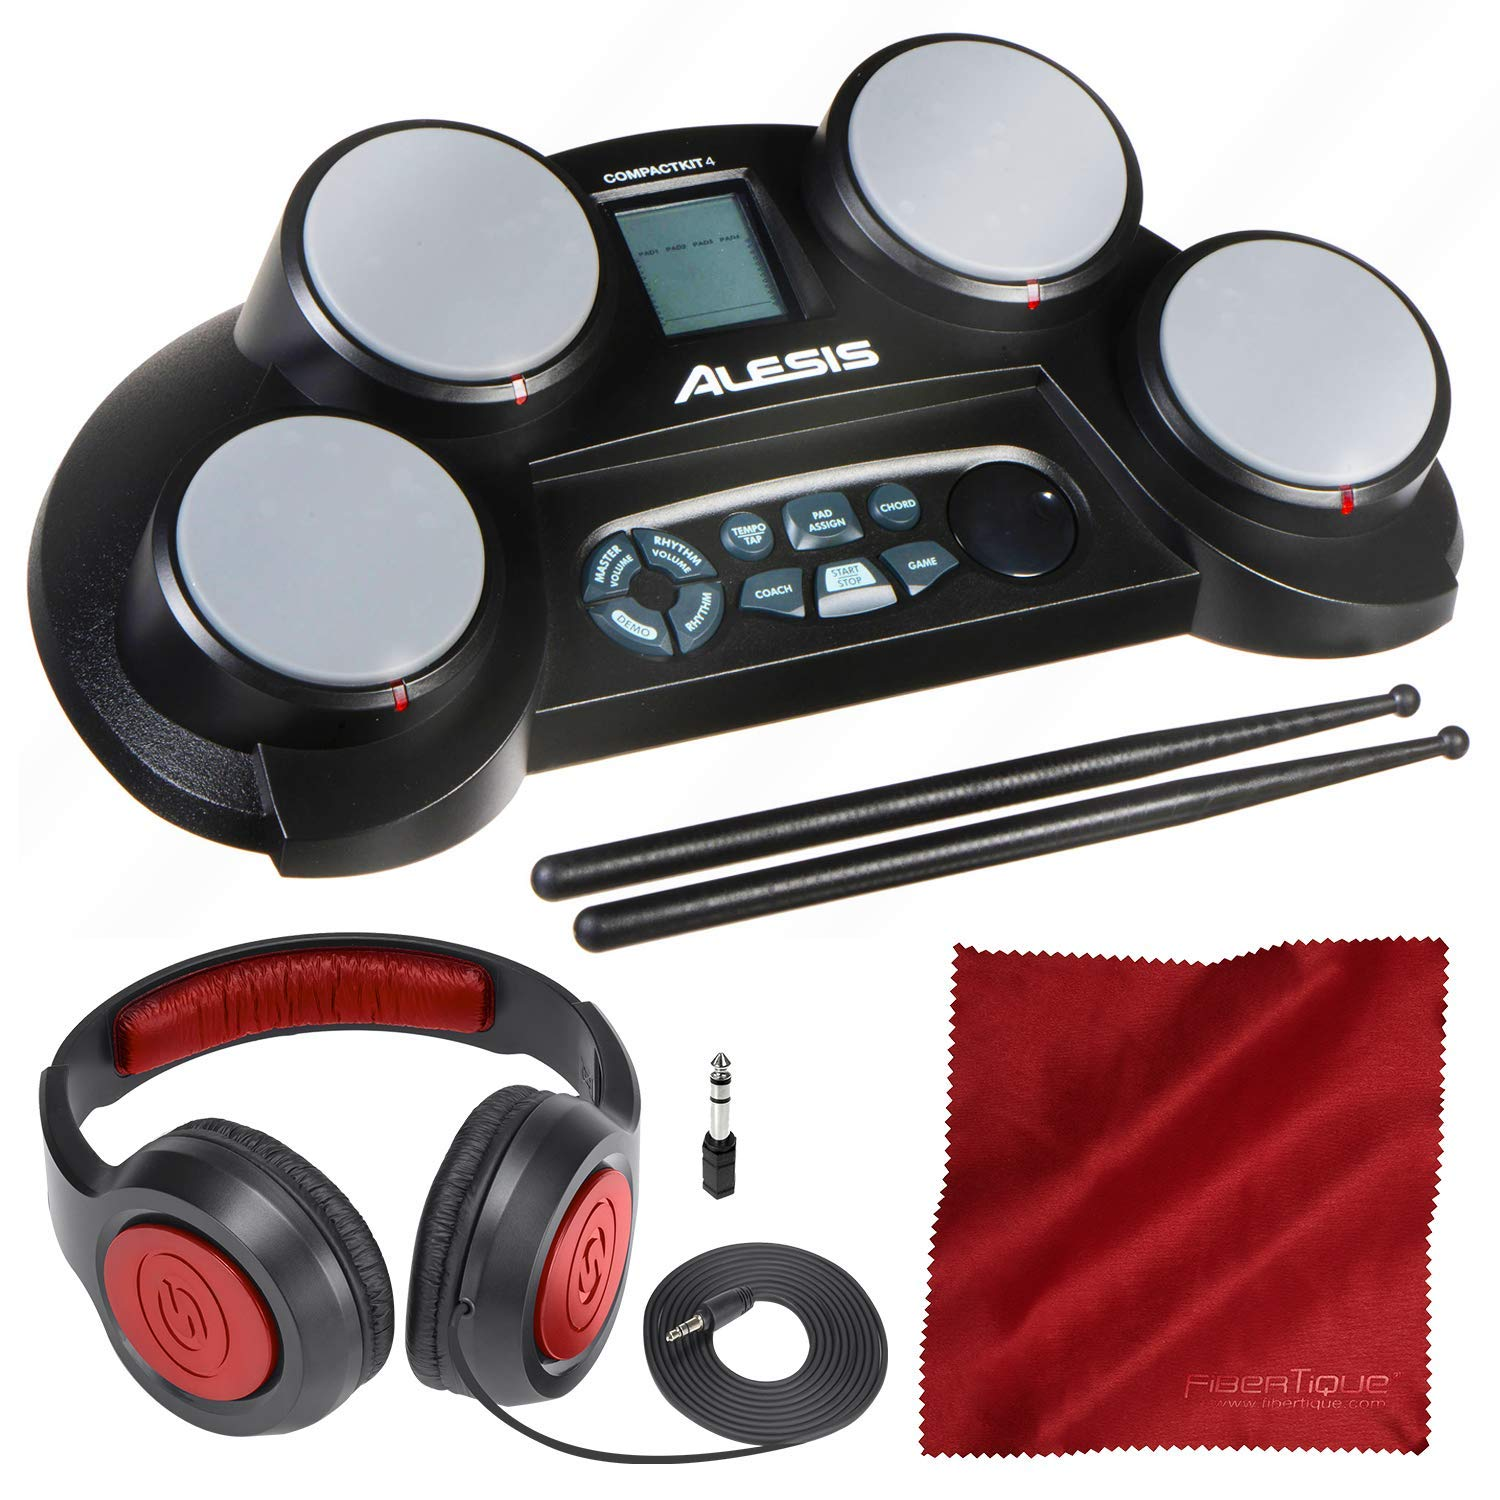 Alesis CompactKit 4   Portable 4-Pad Tabletop Electronic Drum Kit with Drumsticks and Headphones Bundle